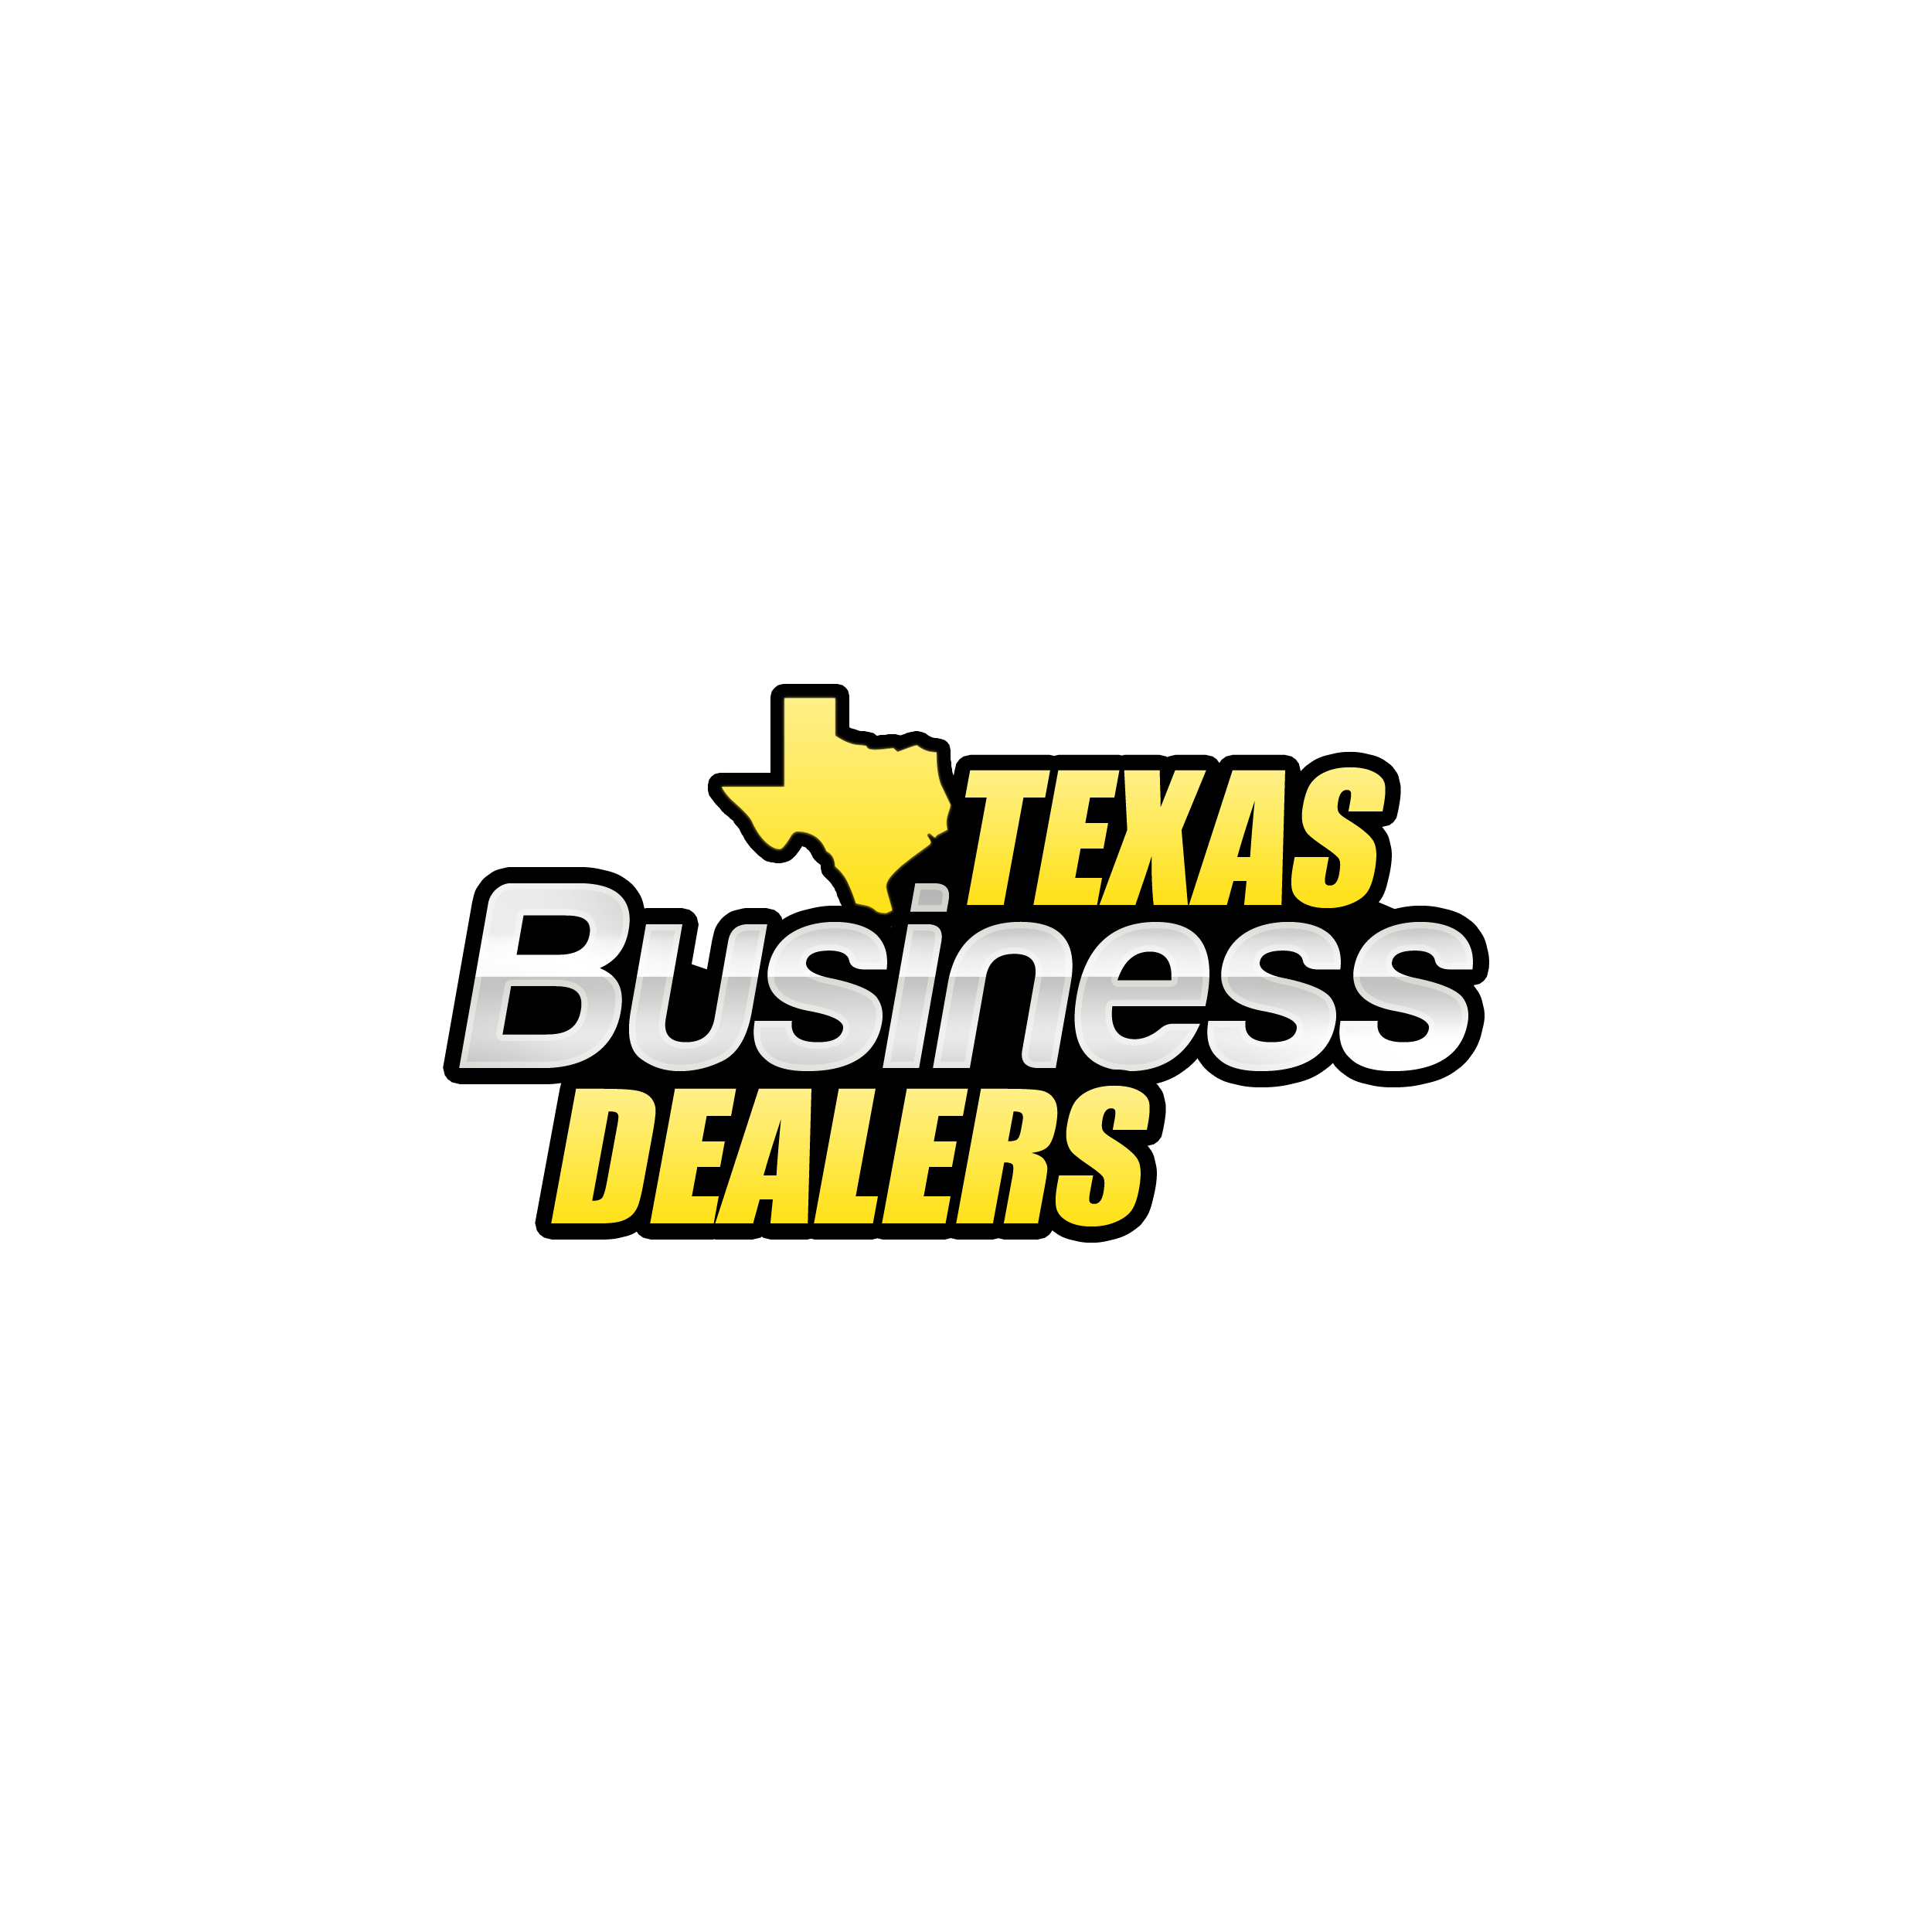 Texas Business Dealers